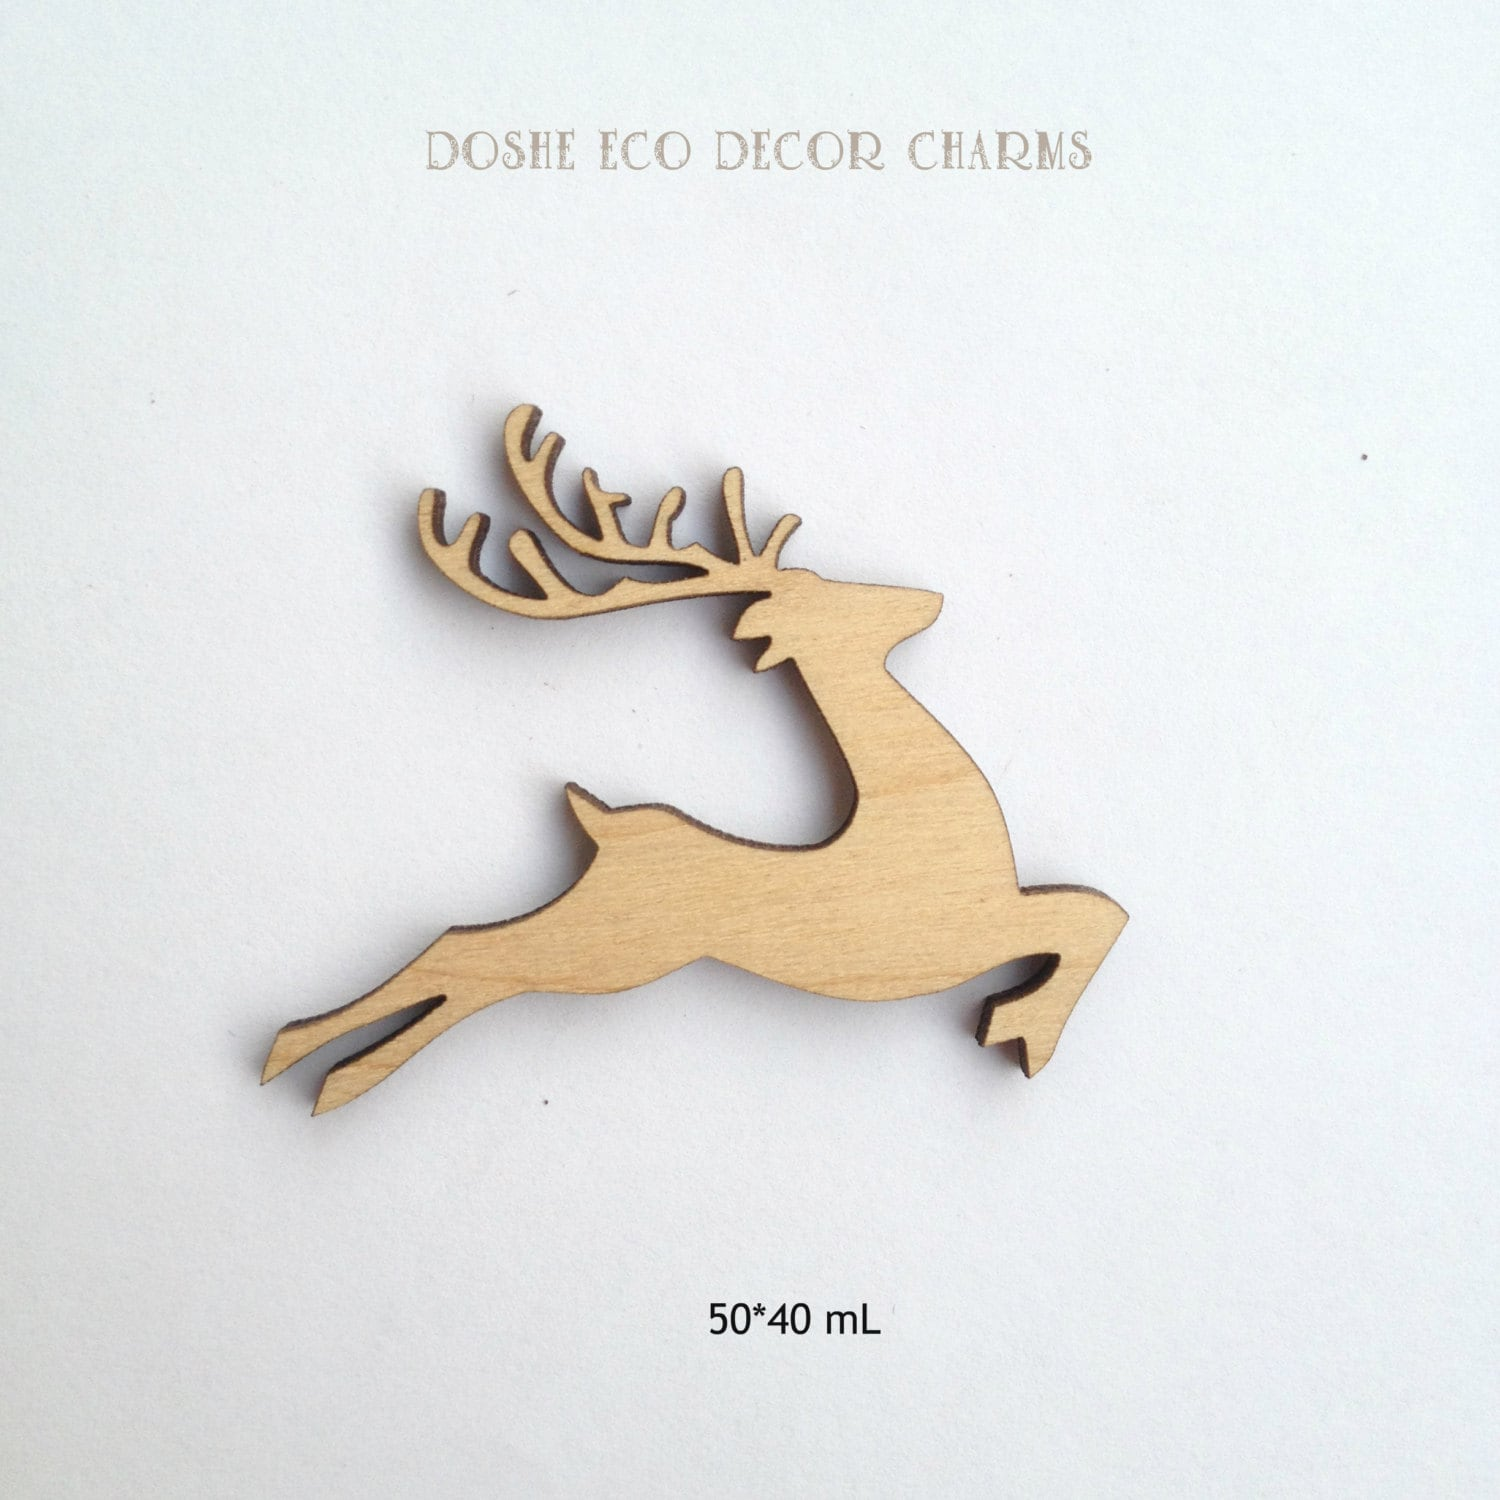 rare scottish pat horn item patent gems of brooch deer handmade order heather a brooches